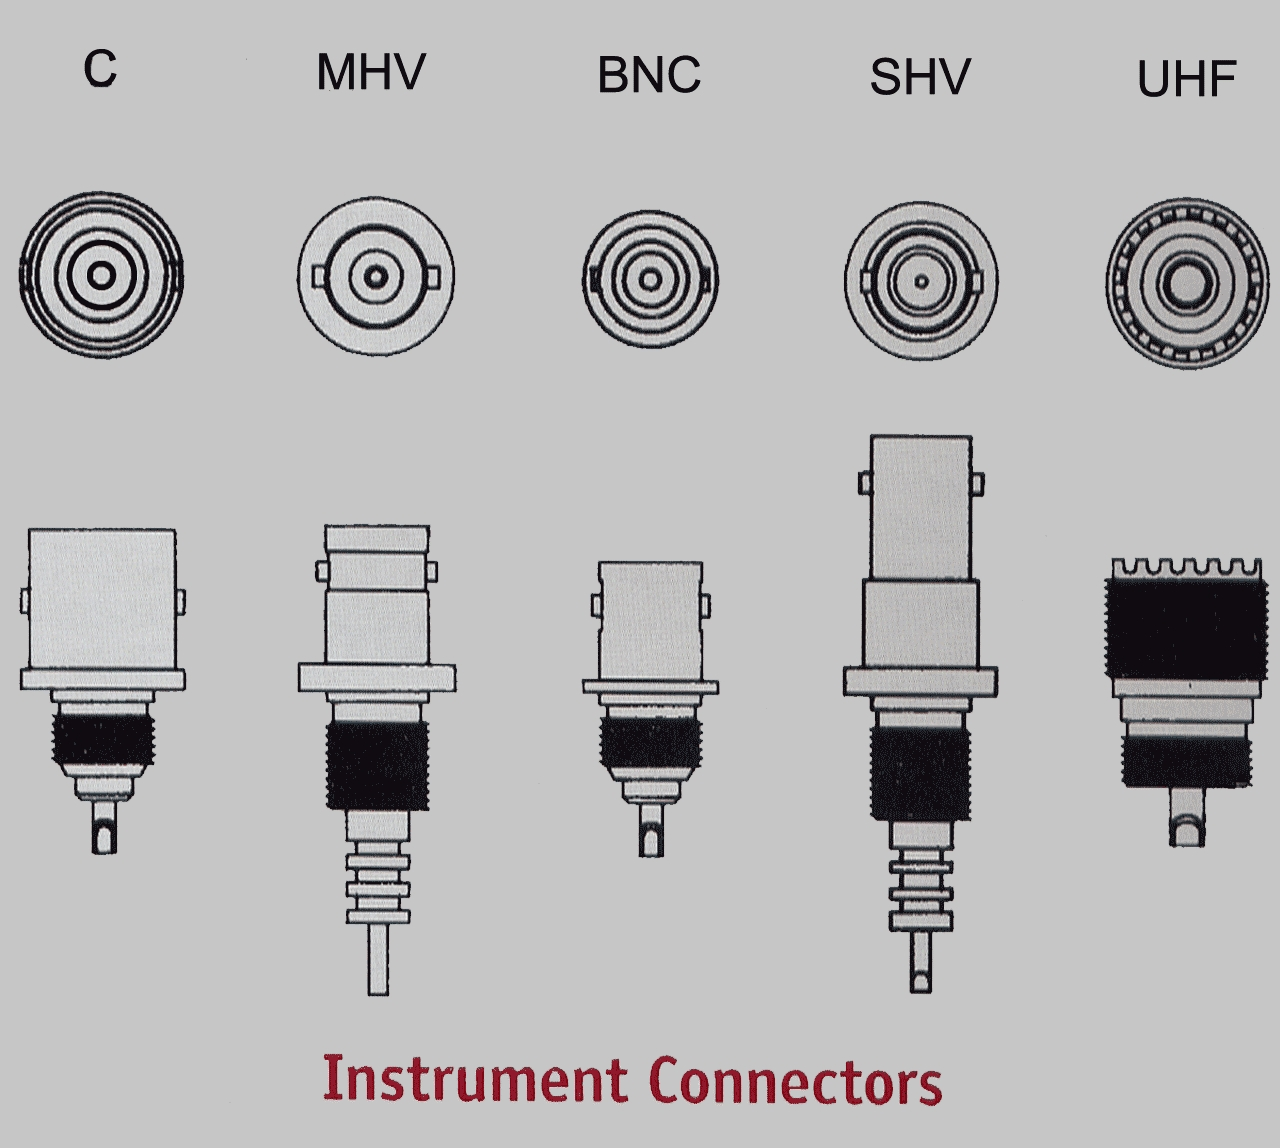 Instrument Connectors